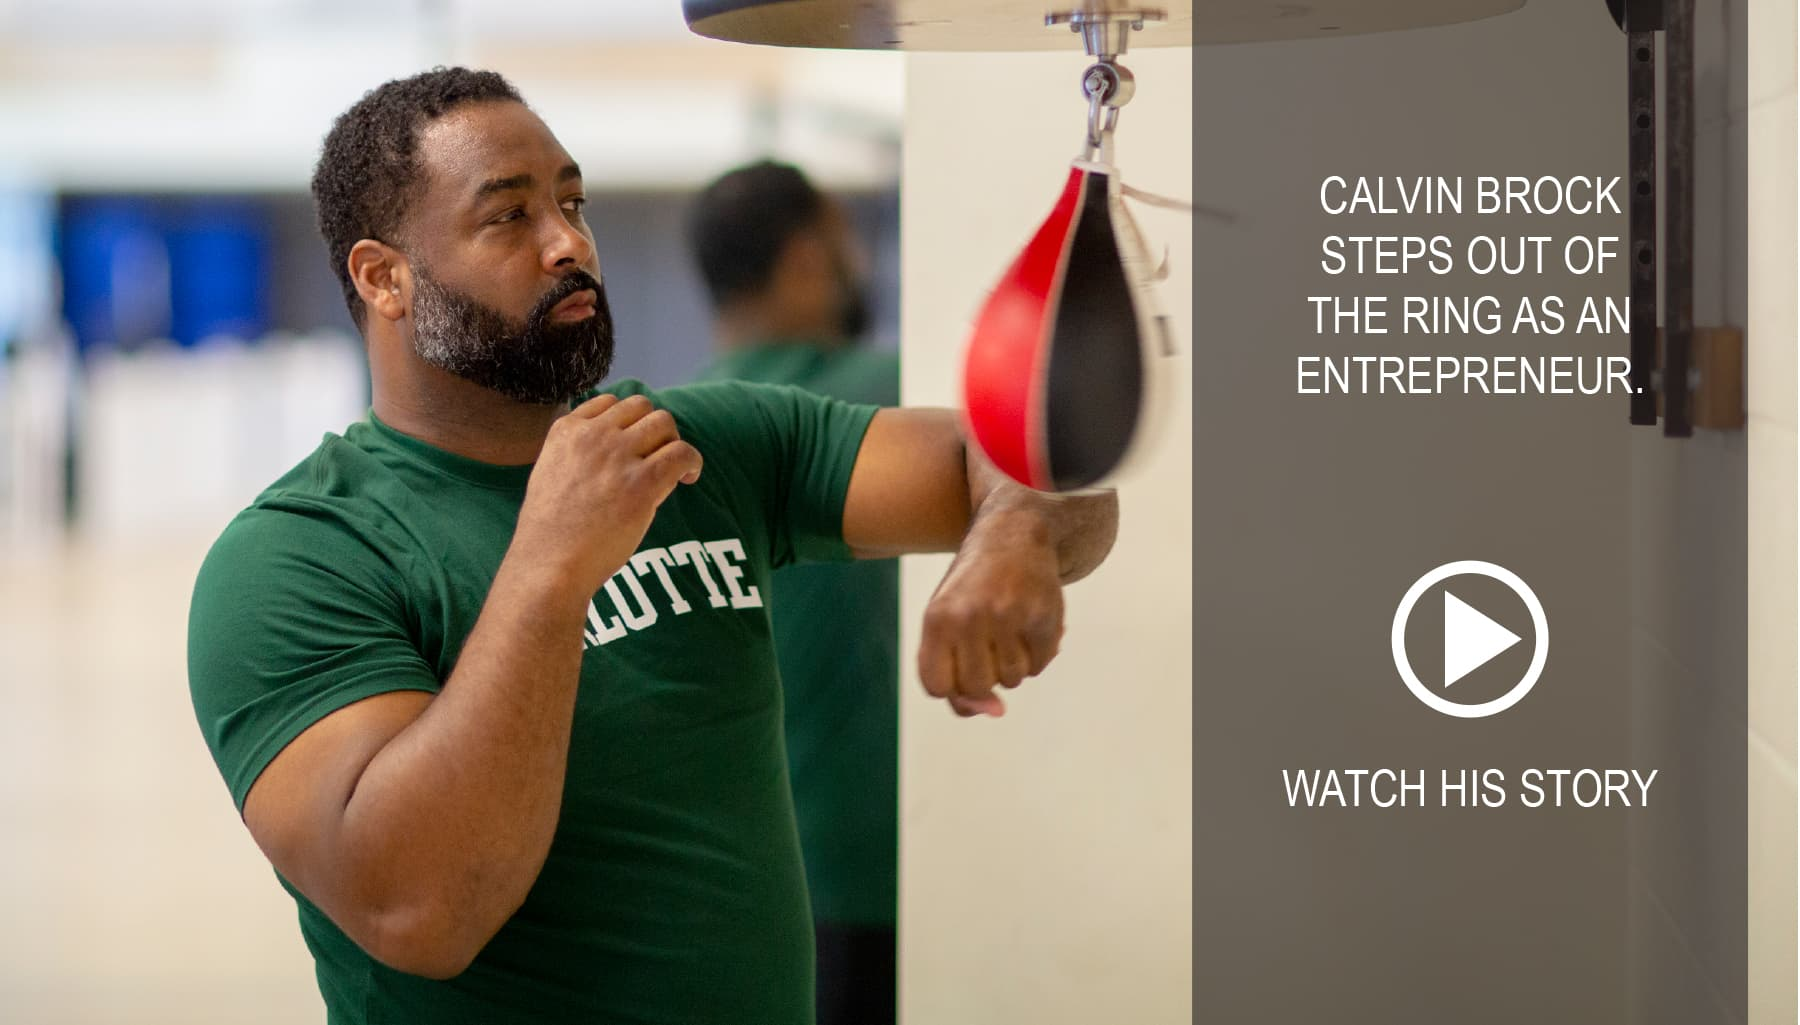 Calvin Brock steps out of the ring as an entrepreneur.  Watch his story.